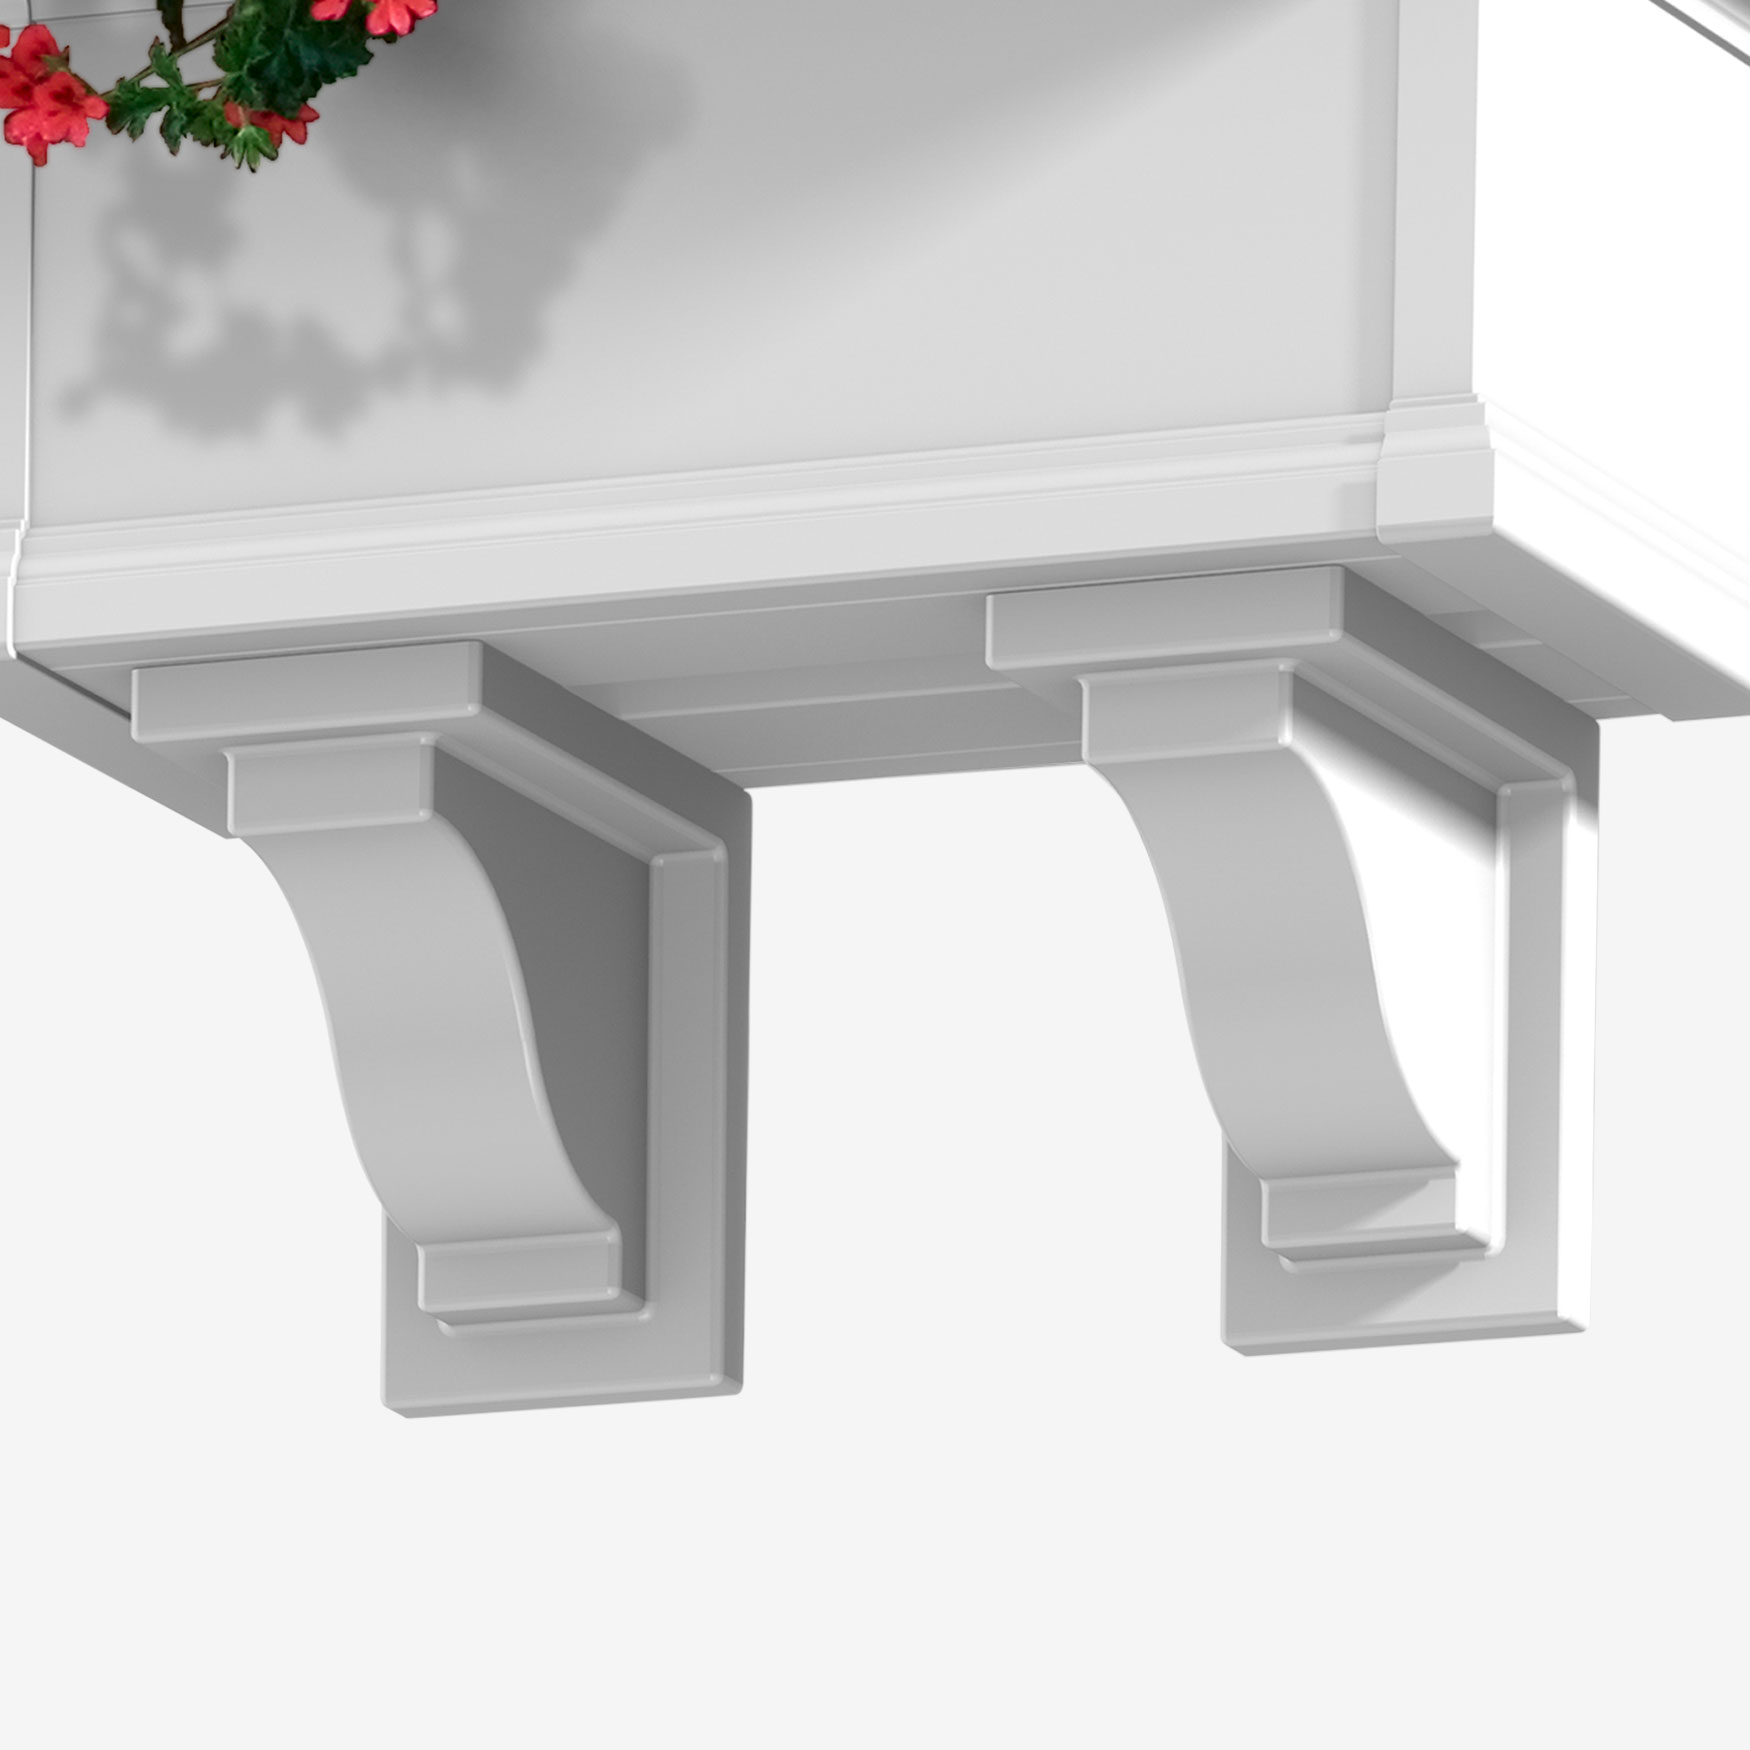 Mayne® Yorkshire Decorative Brackets 2-Pack, WHITE